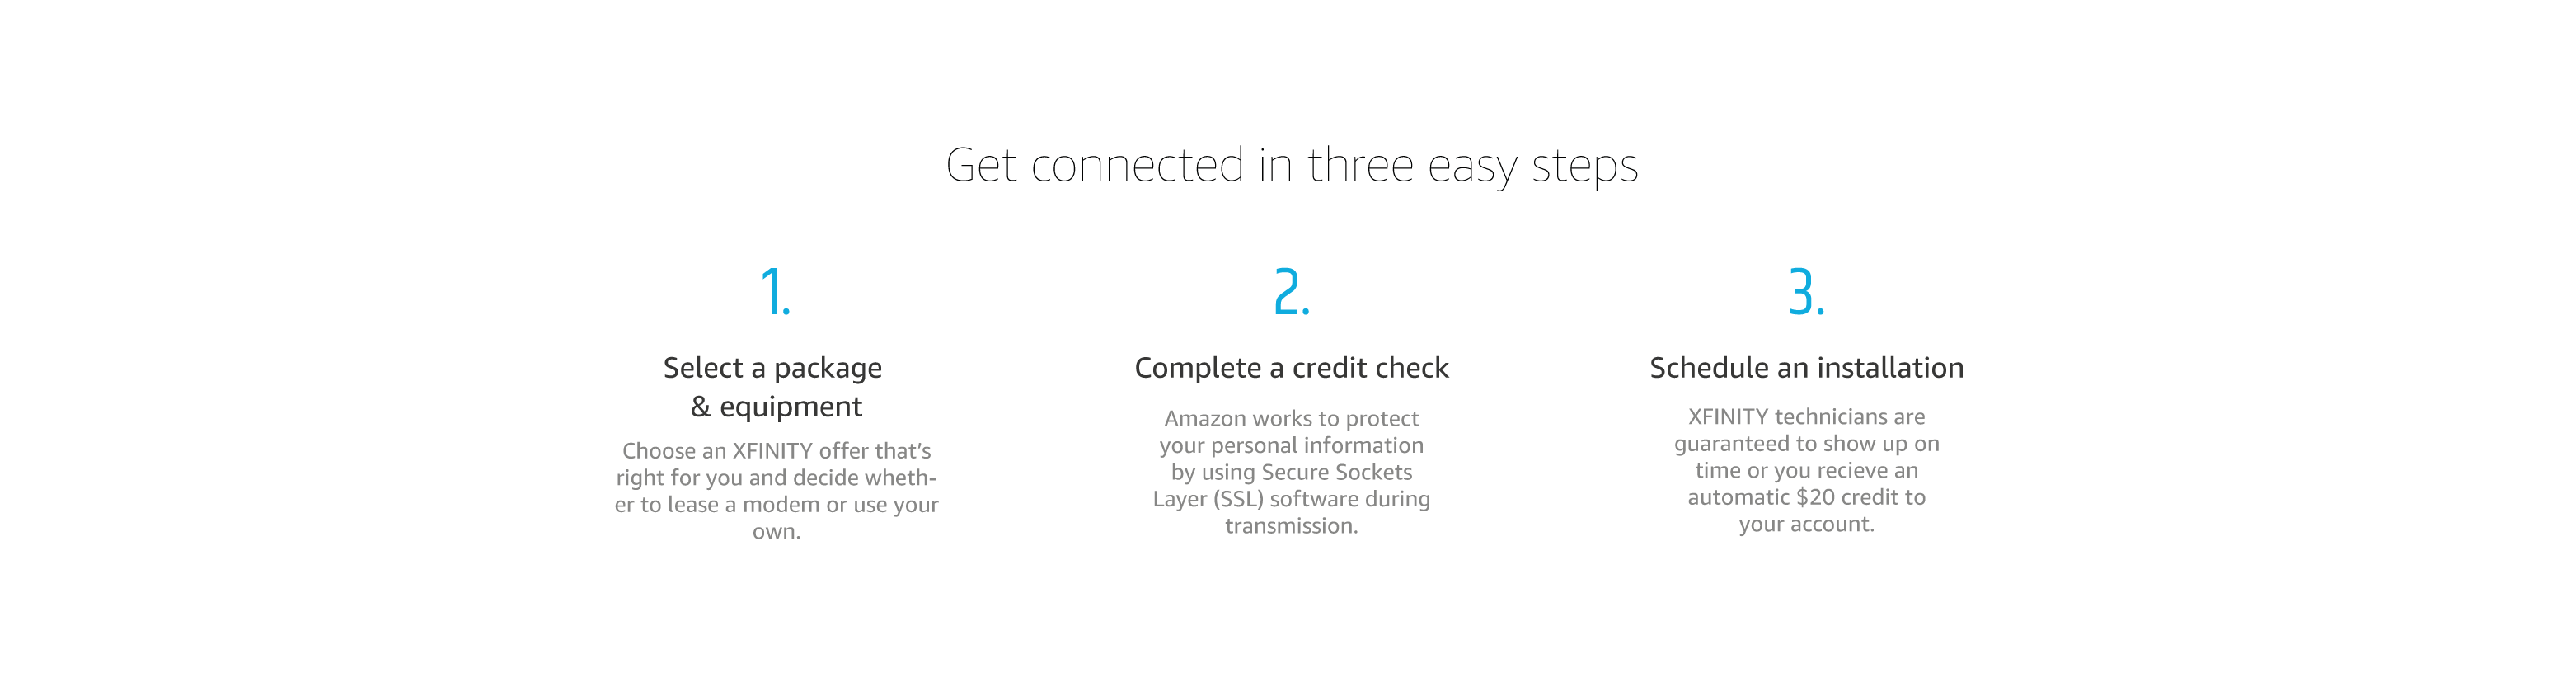 Get connected in 3 easy steps.